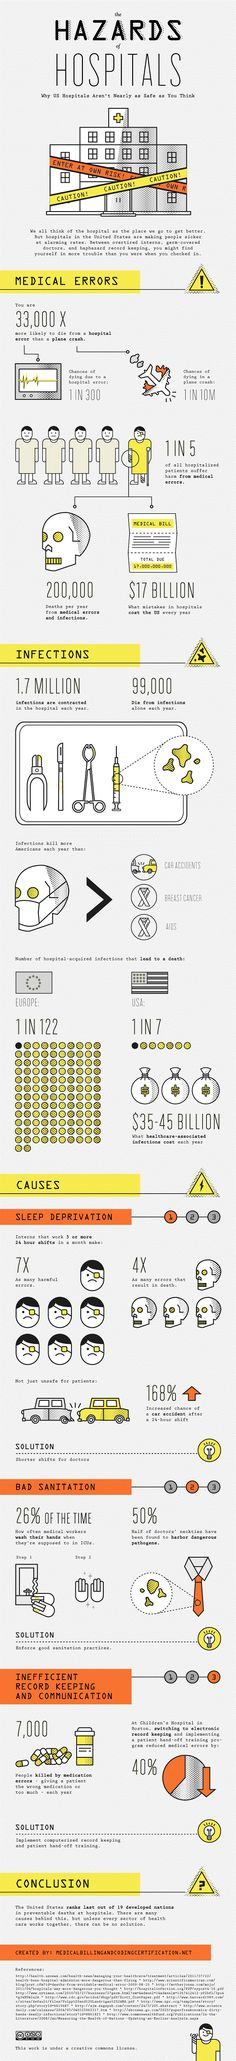 The Hazards of Hospitals - Why US Hospitals Aren't as Safe as you Think - #Infographic www.healthcoverageally.com